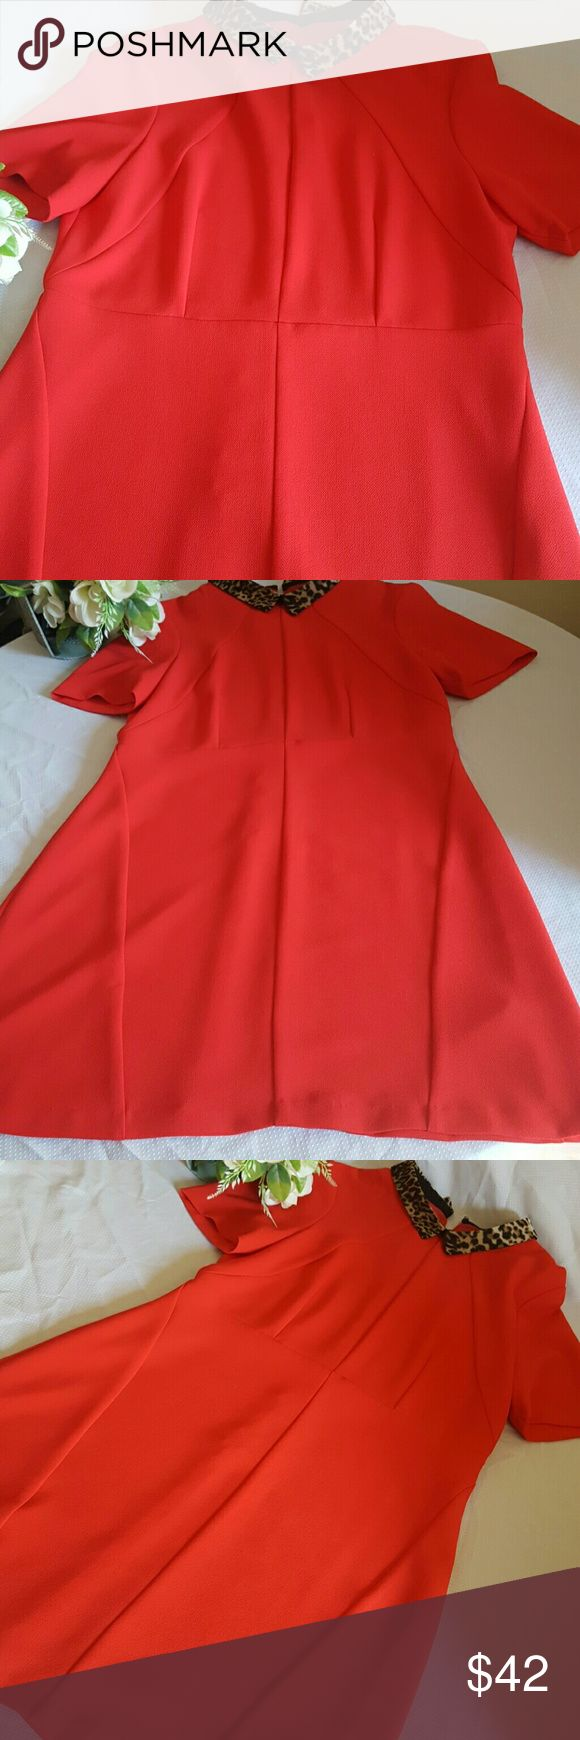 NEW WITH TAG OASIS DRESS SIZE 16/42 Perfect conditions  new wiht tag.rooms like a zise mediwn. Oasis  Dresses Midi